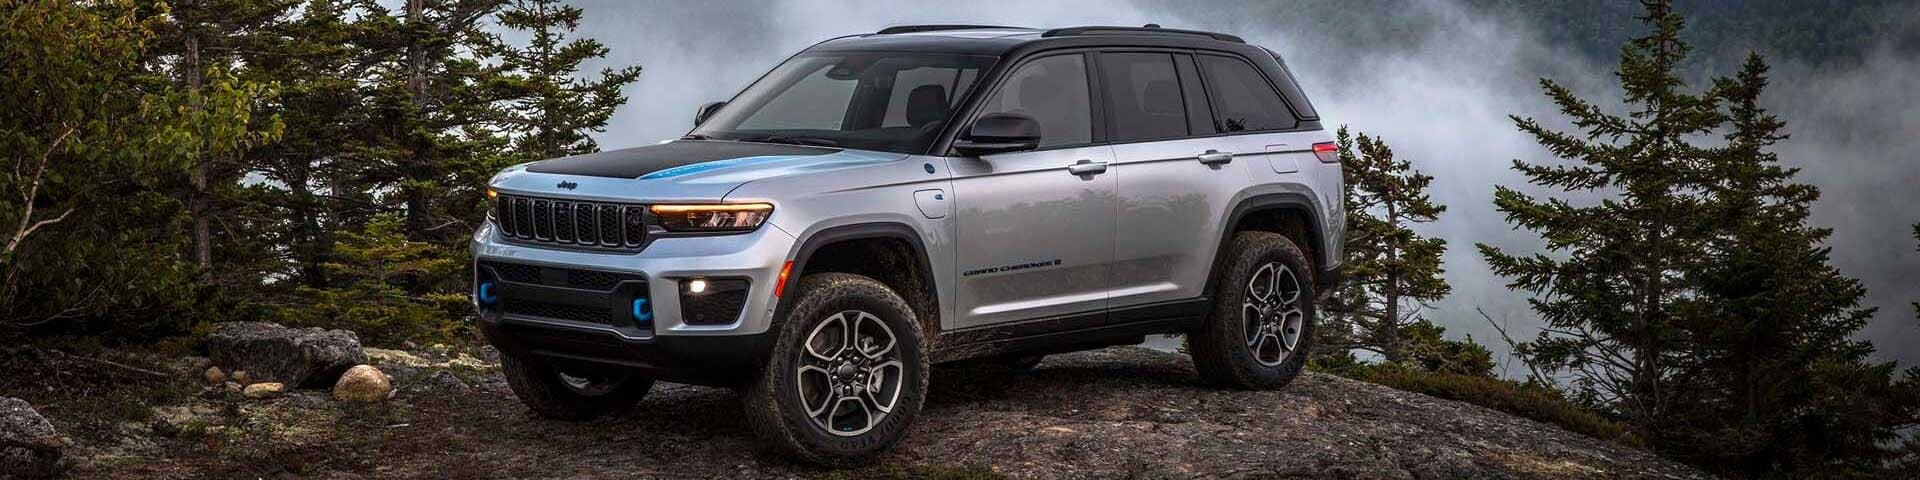 2022 Jeep Grand Cherokee in New Orleans